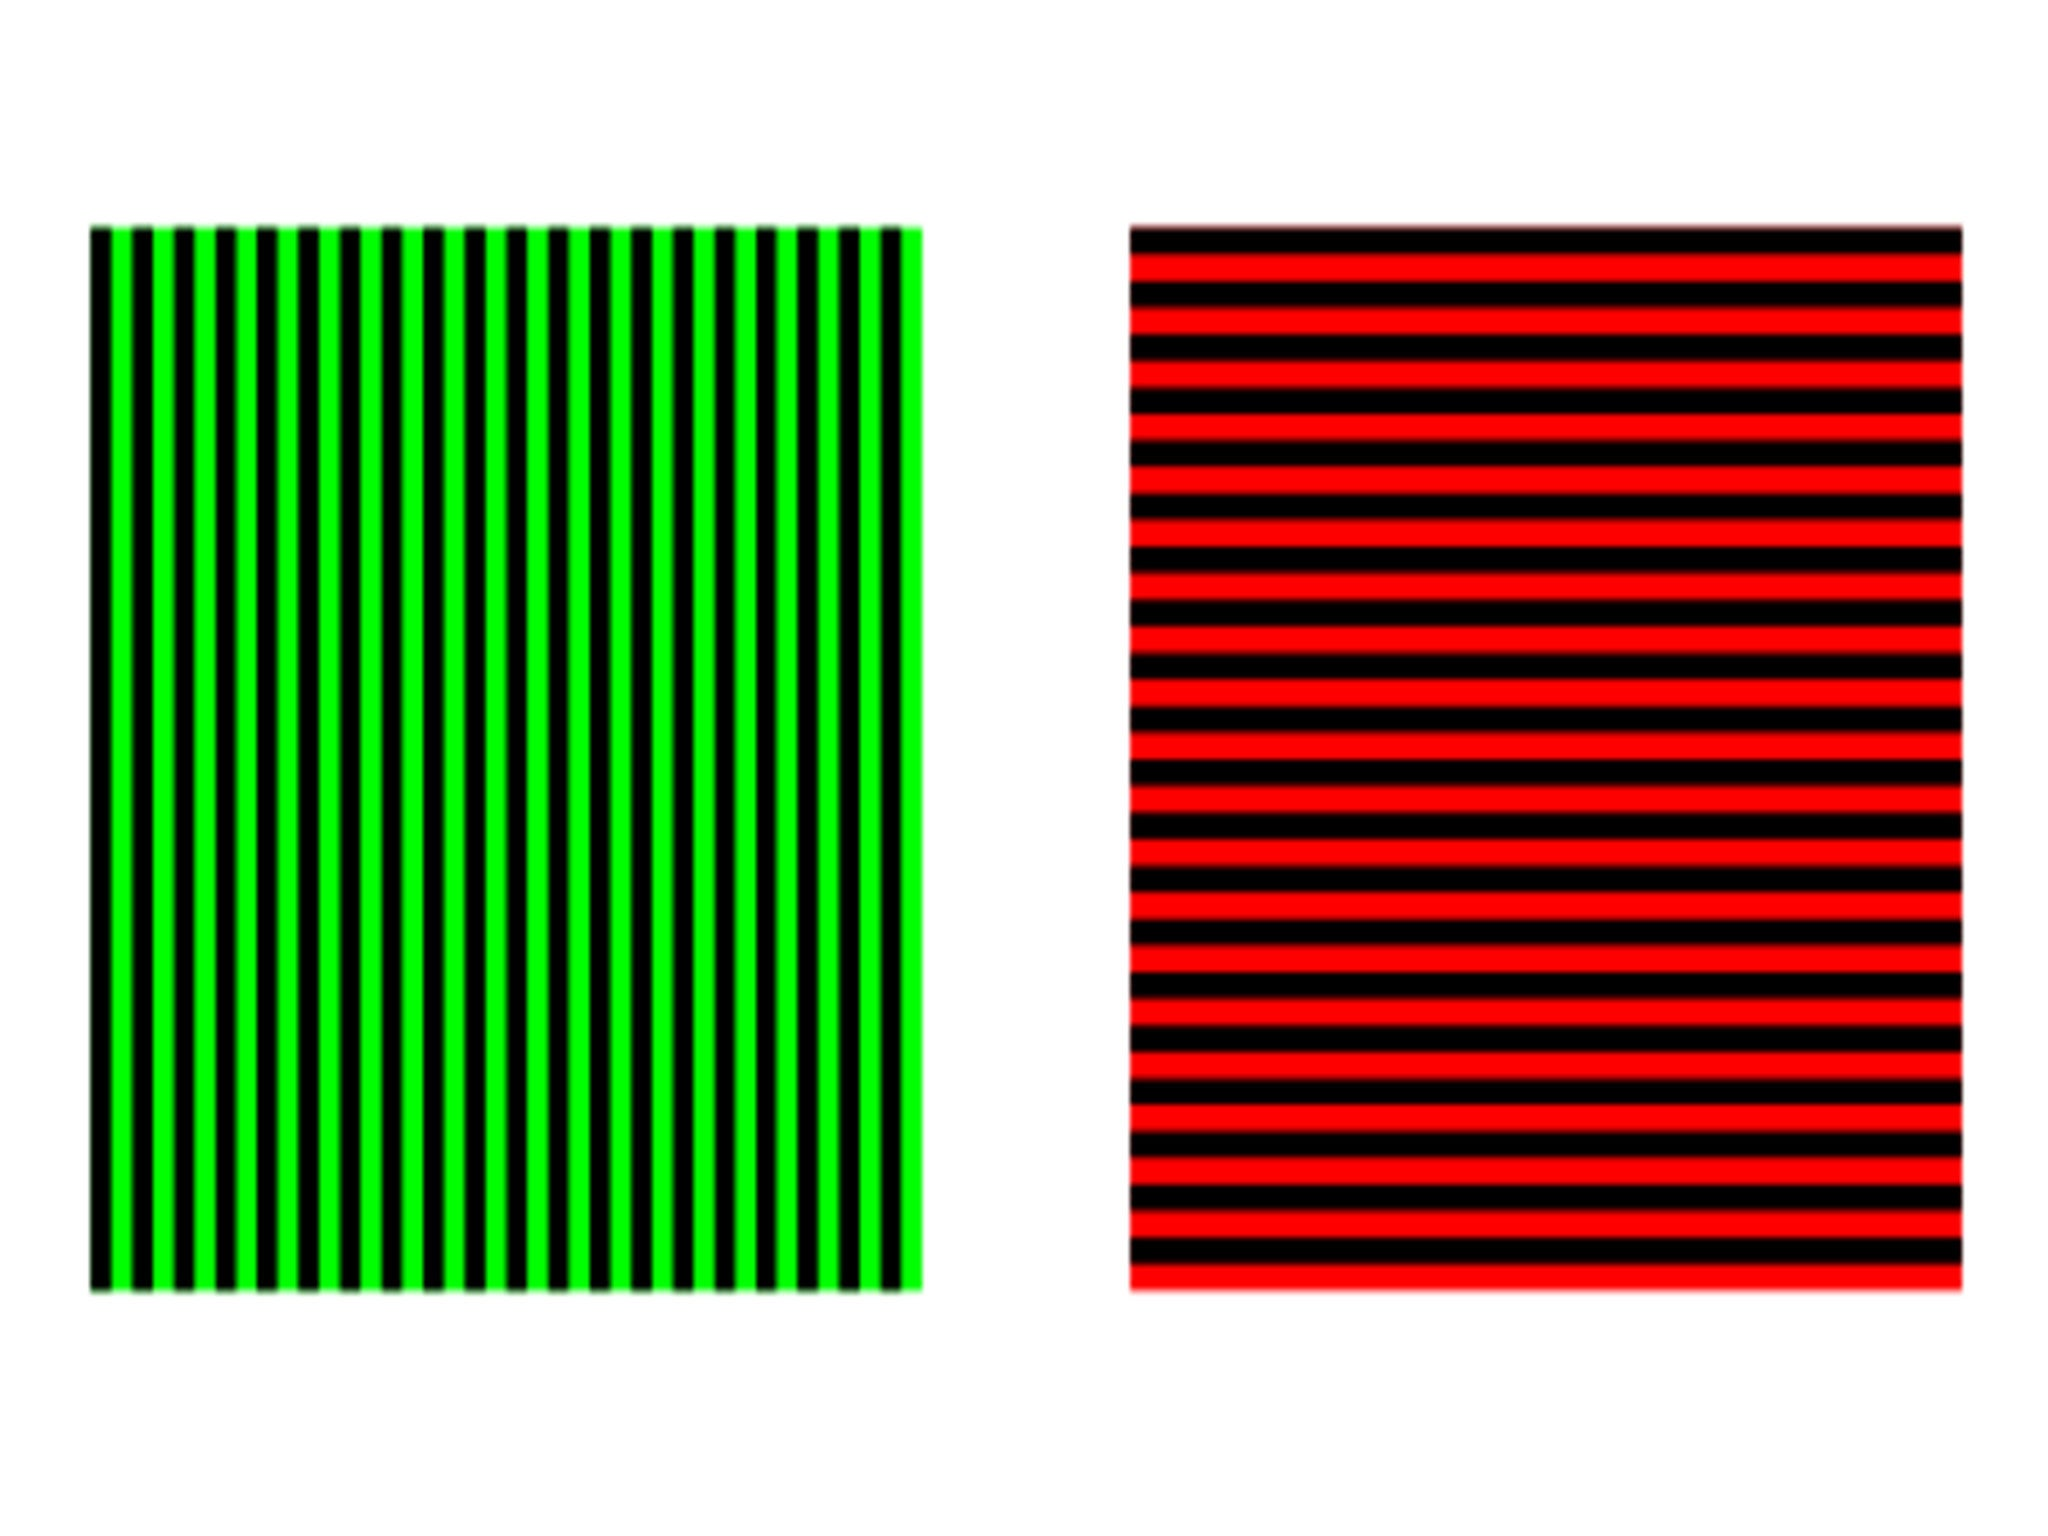 Then You Look At The Green Black And Red Stripes